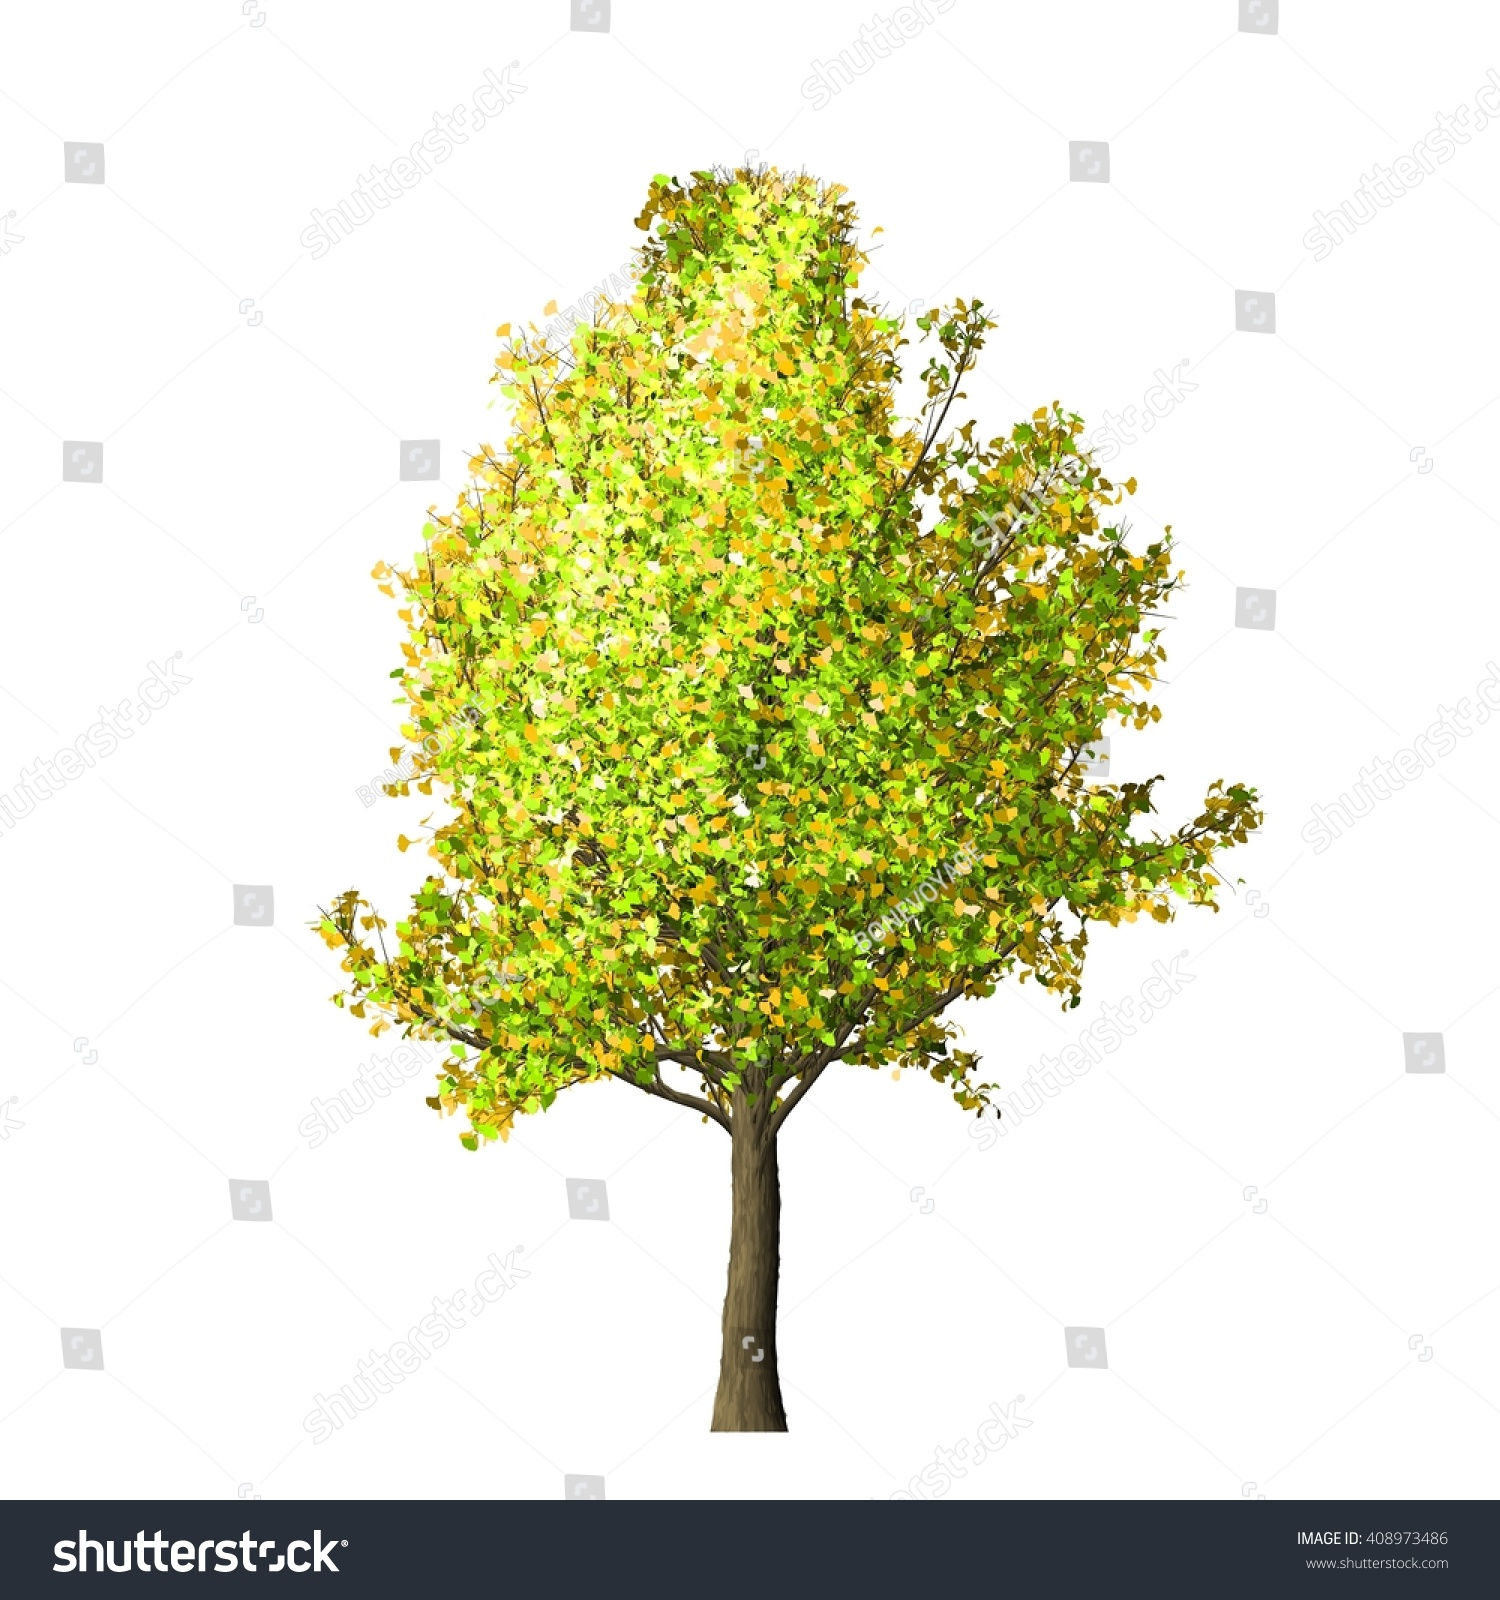 Ginkgo Tree Isolated On White Background, 3d Illustration. - 408973486 ...